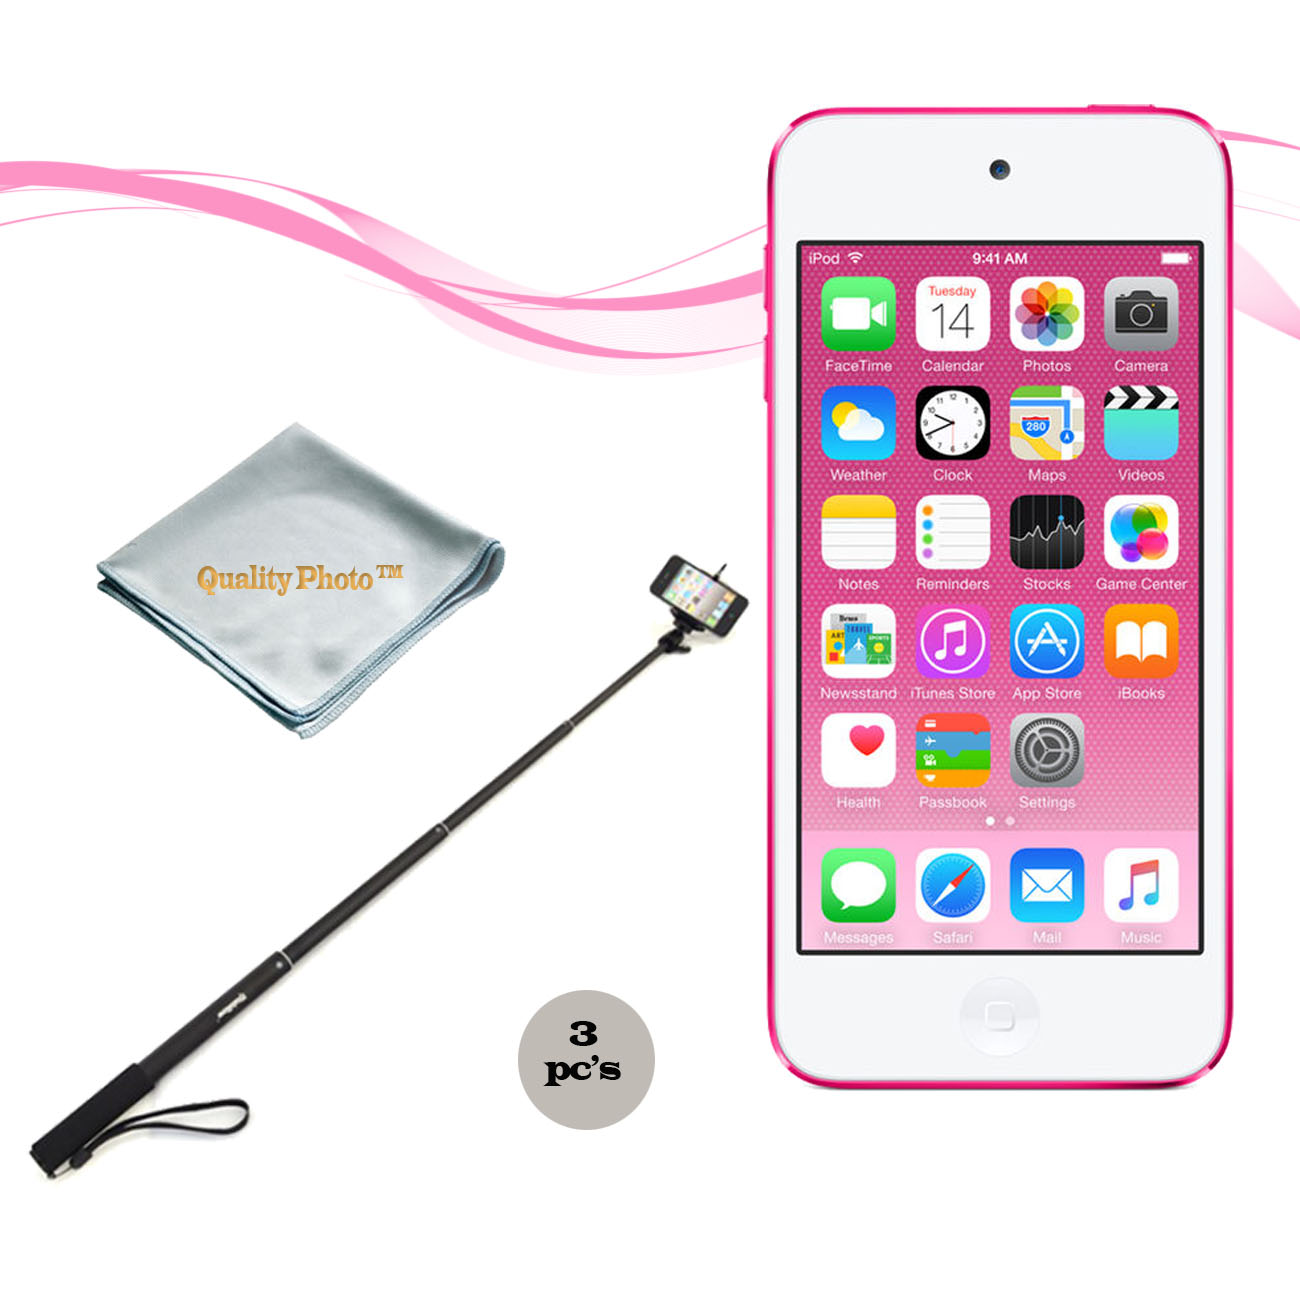 Apple Ipod Touch 16gb Pink (6th Generation) with a Istabilizer Istmp01 Monopod and Quality Photo Microfiber Cloth